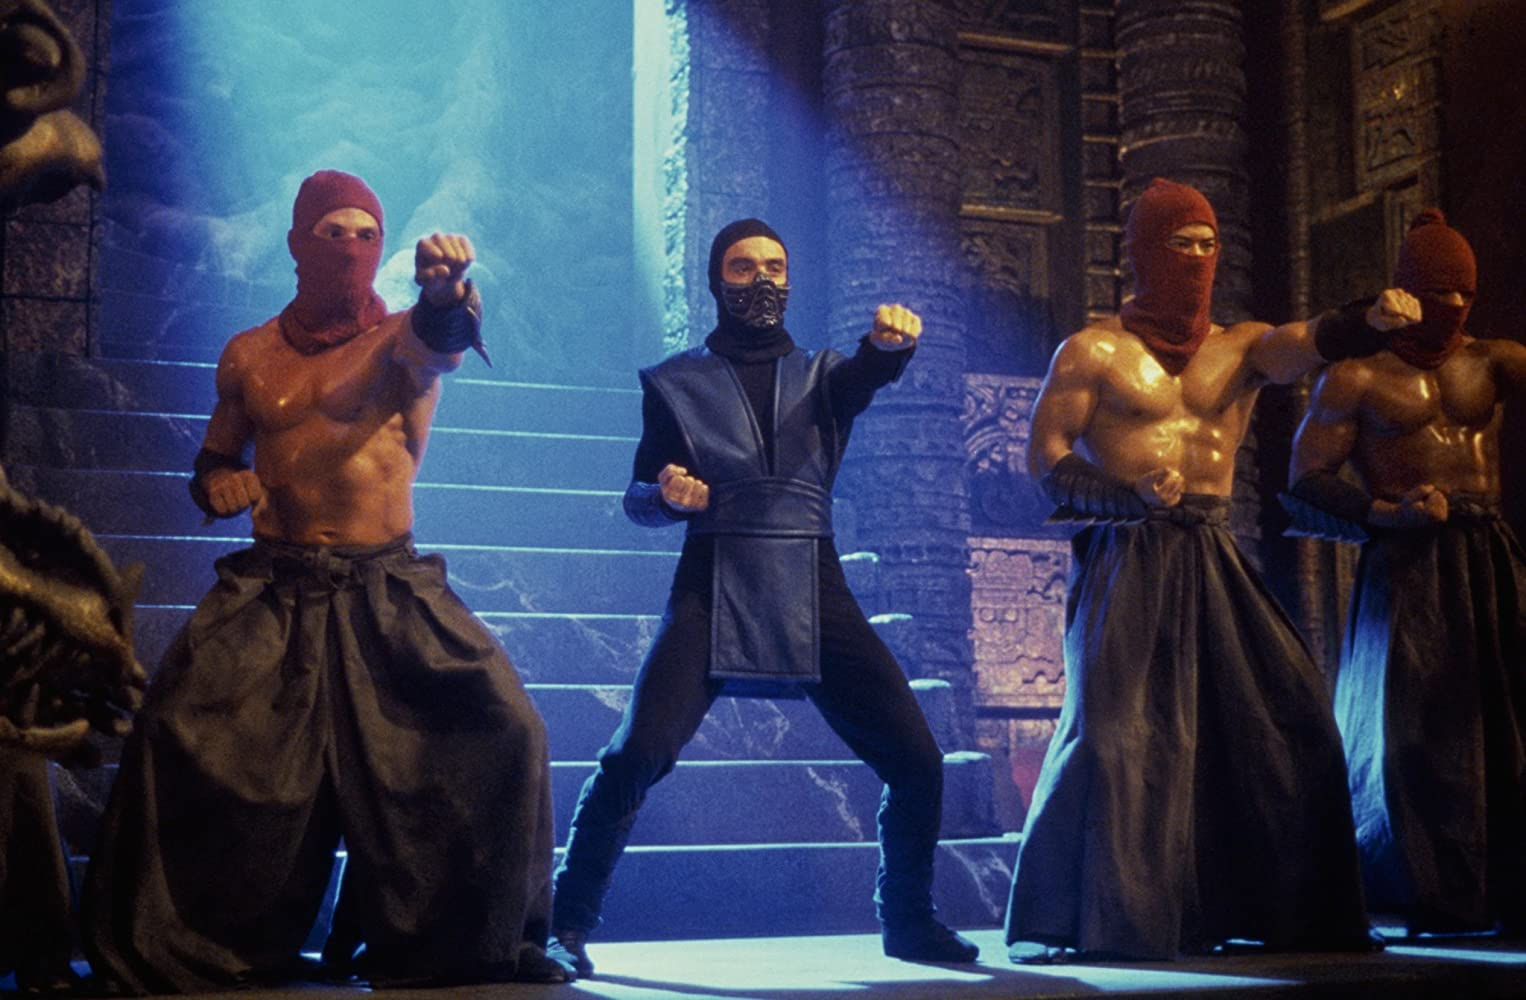 Christopher Lambert and François Petit in Mortal Kombat (1995)